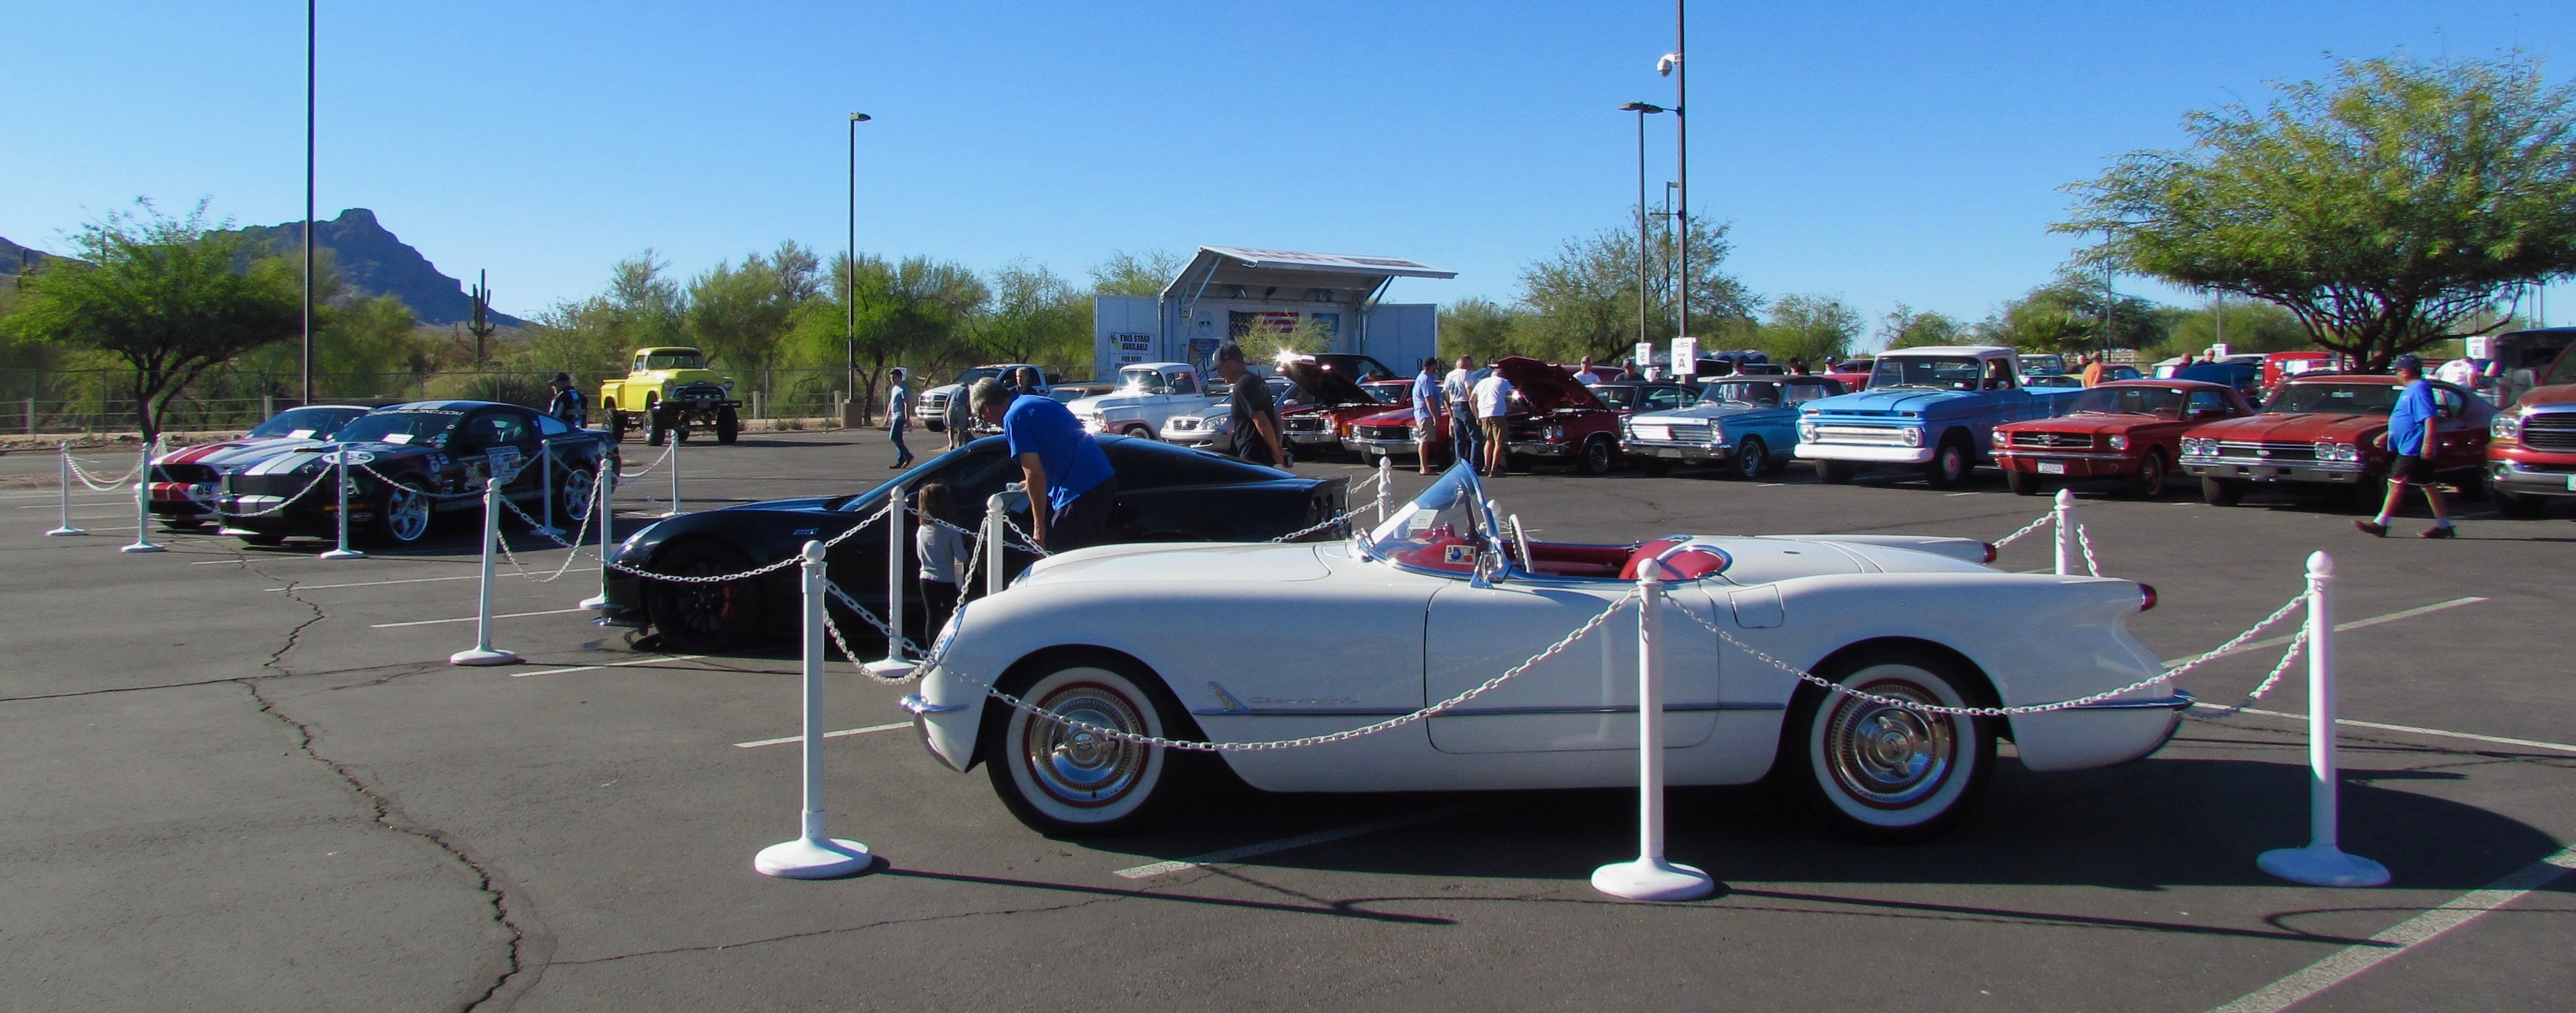 After soft launch, Silver Auctions Arizona looks to January sale